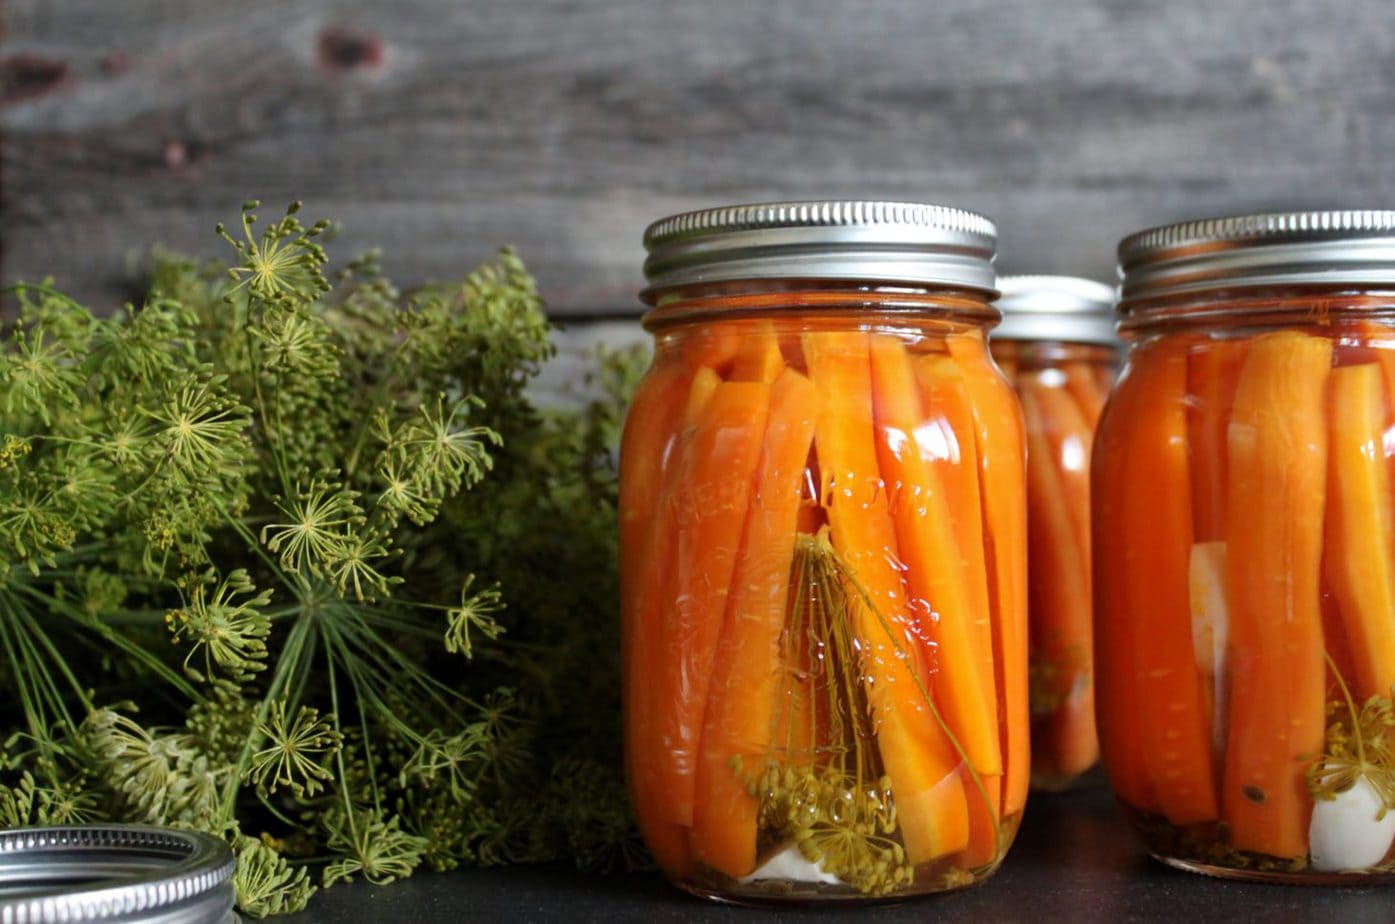 Pickled Carrots with Dill and Garlic - Dish 'n' the Kitchen A Jar of bright carrots, fresh dill, and garlic fill a jar surrounded by more fresh dill and garlic.